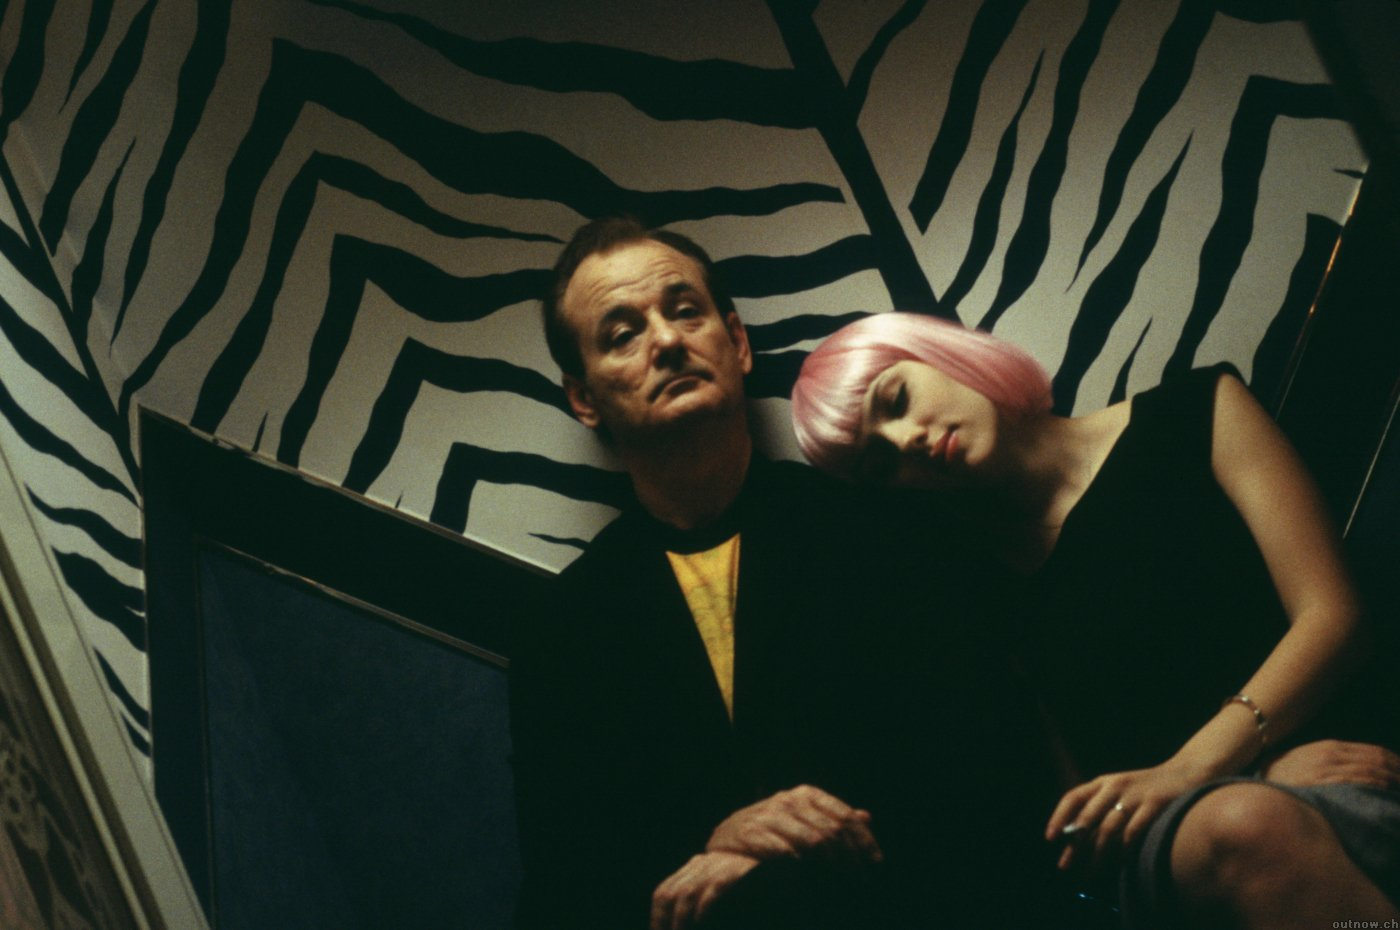 salah satu adegan di film Lost in Translation